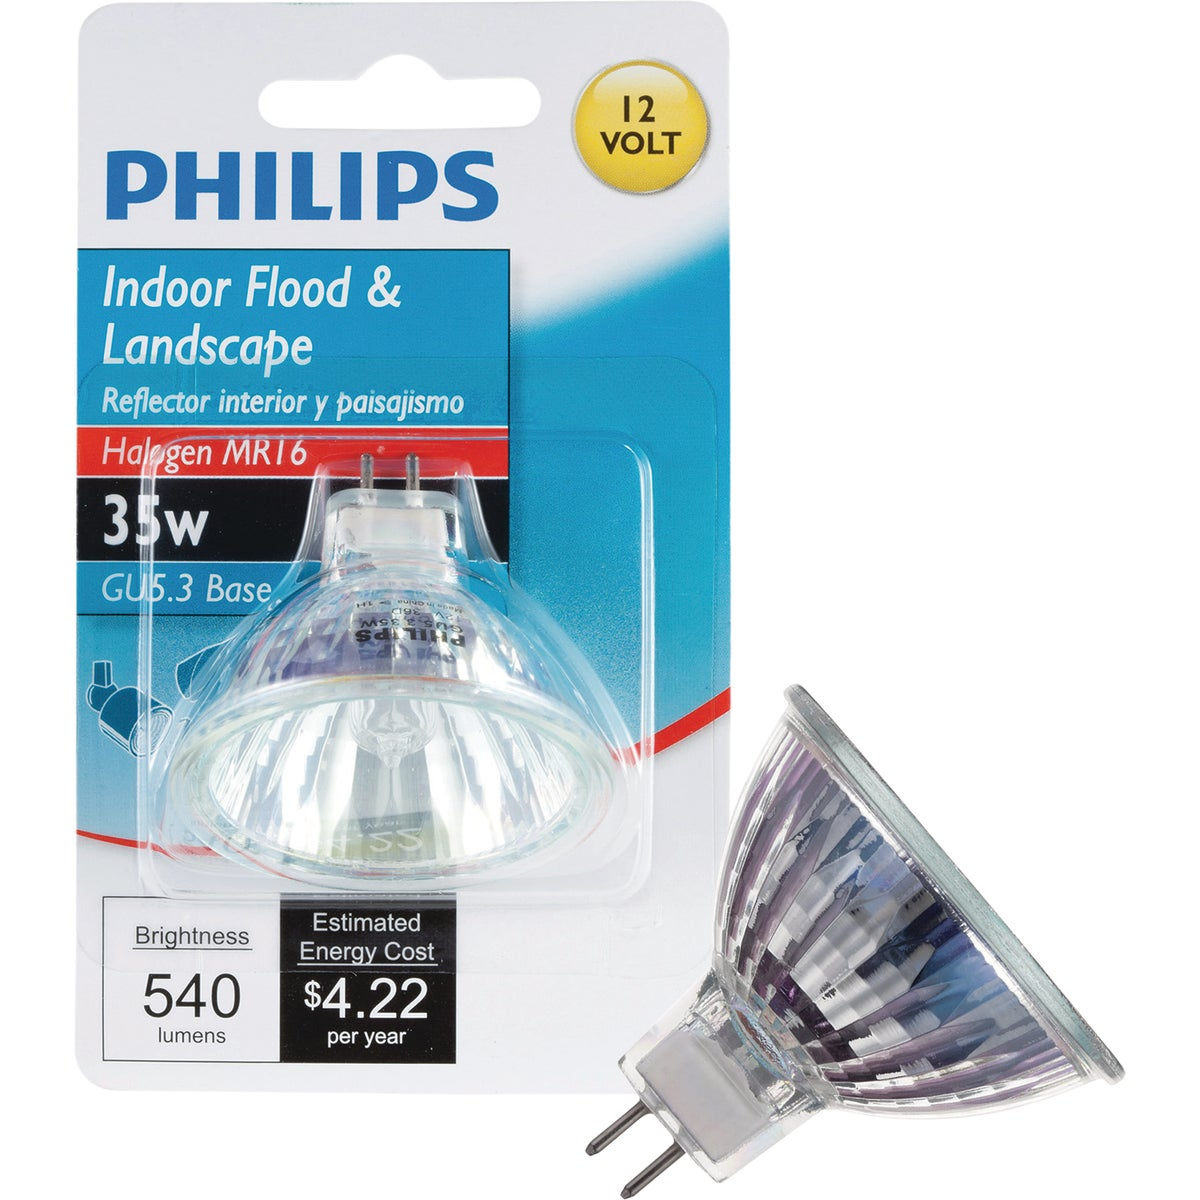 35W MR16 HLGN FLOOD BULB - 77911 Q35MR16HIRCG35CD by G E Lighting